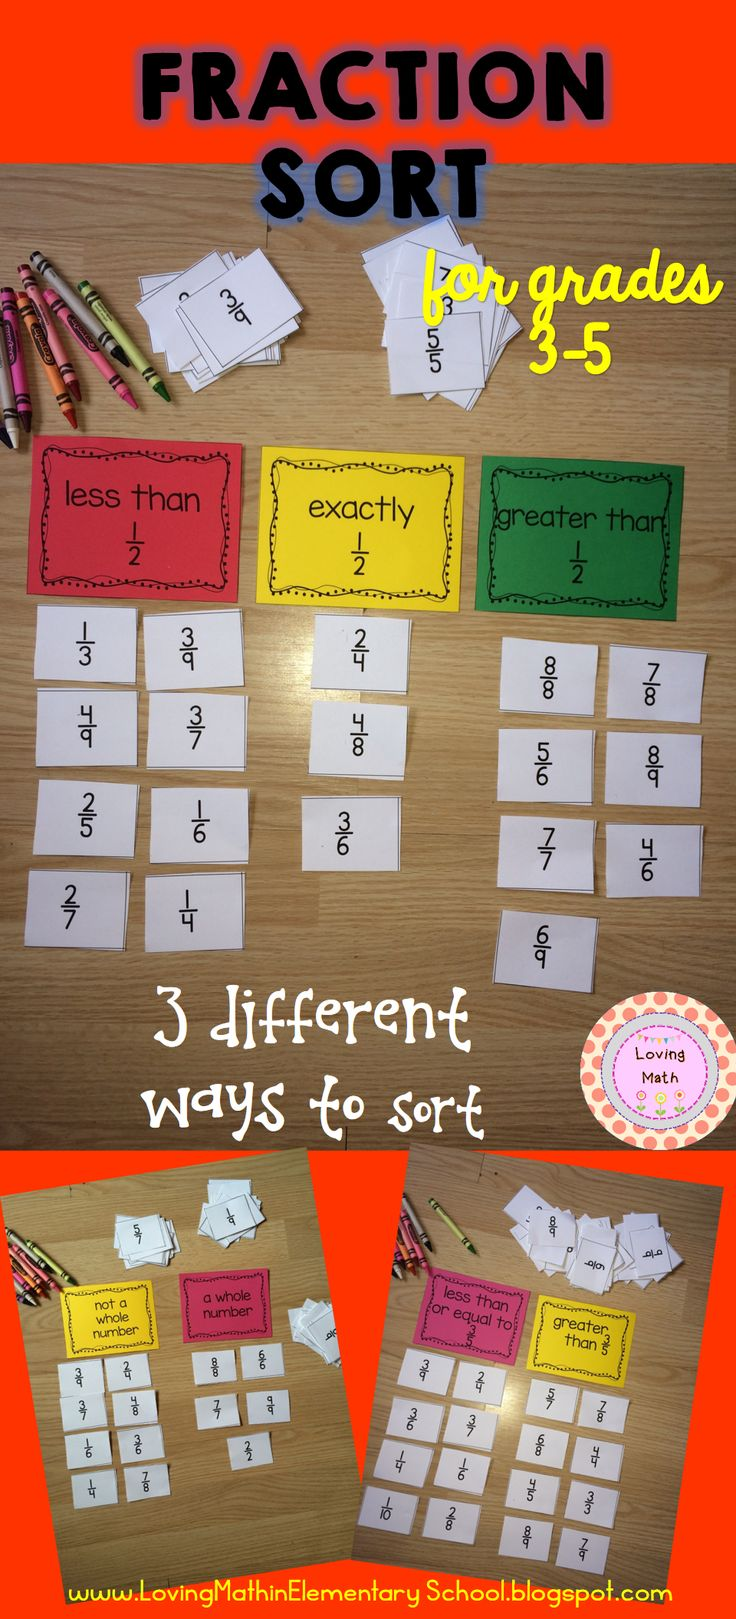 Practice fraction skills with this super fun sorting game! Your students will have a blast. Play in teams and compete for prizes.